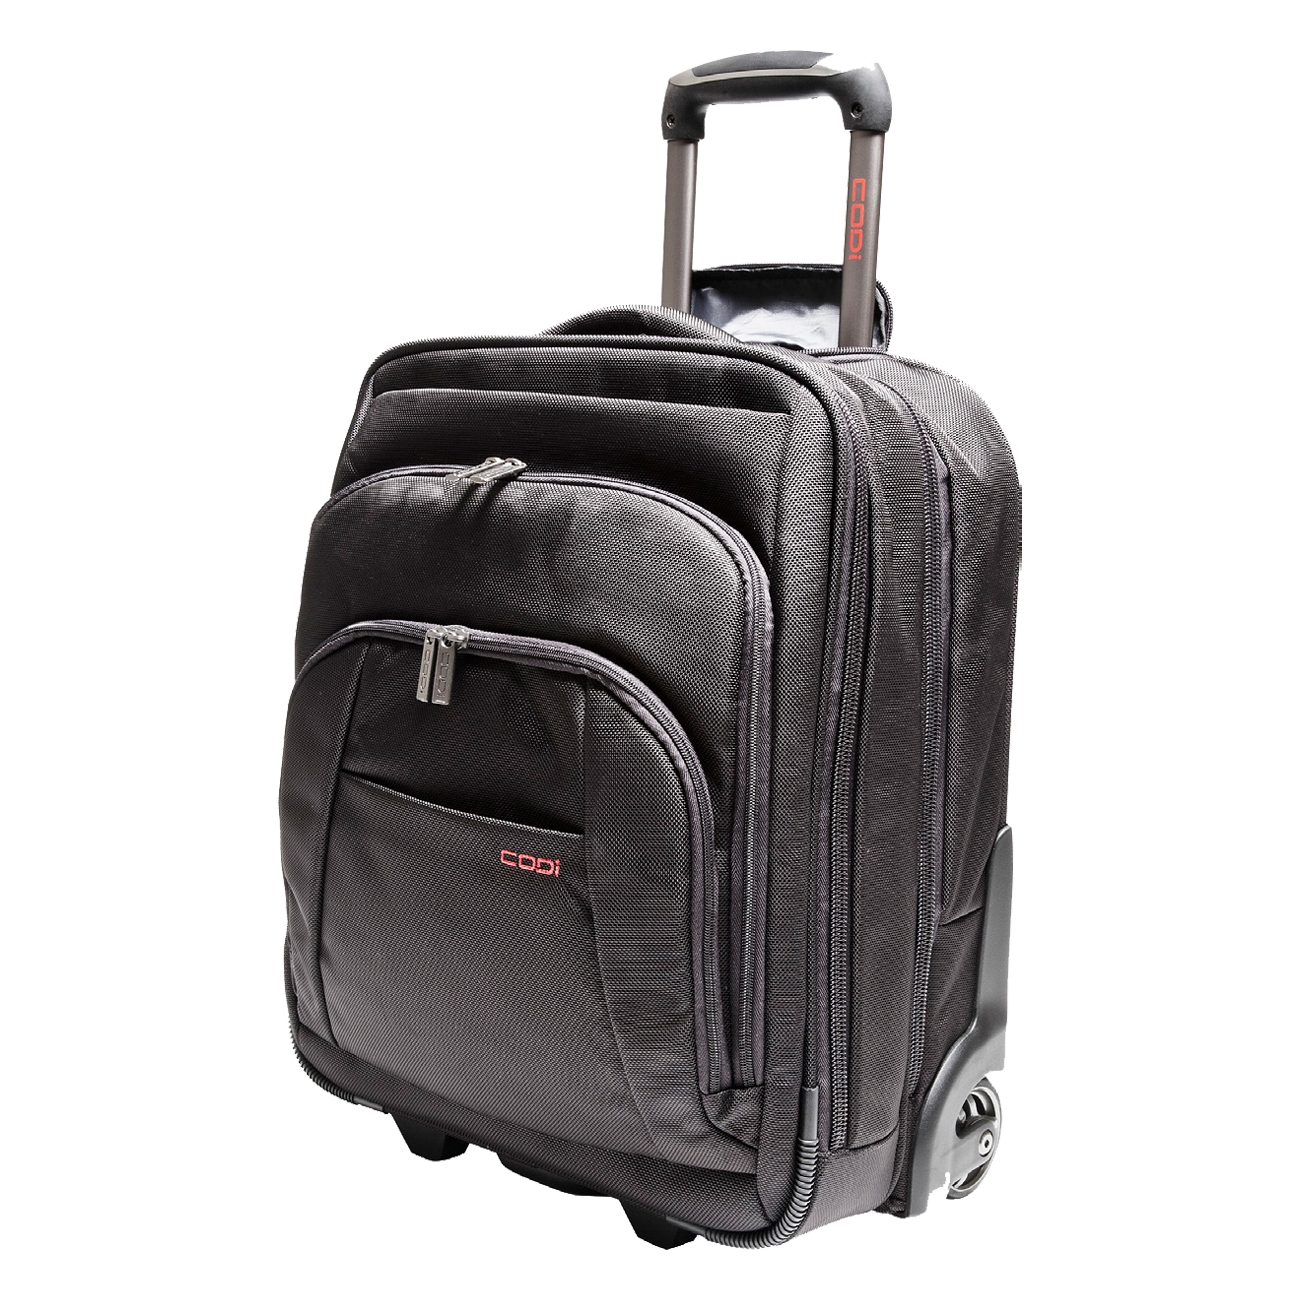 "Codi Mobile Max Carrying Case Roller for 17-1/3"" Travel Essential, Black"